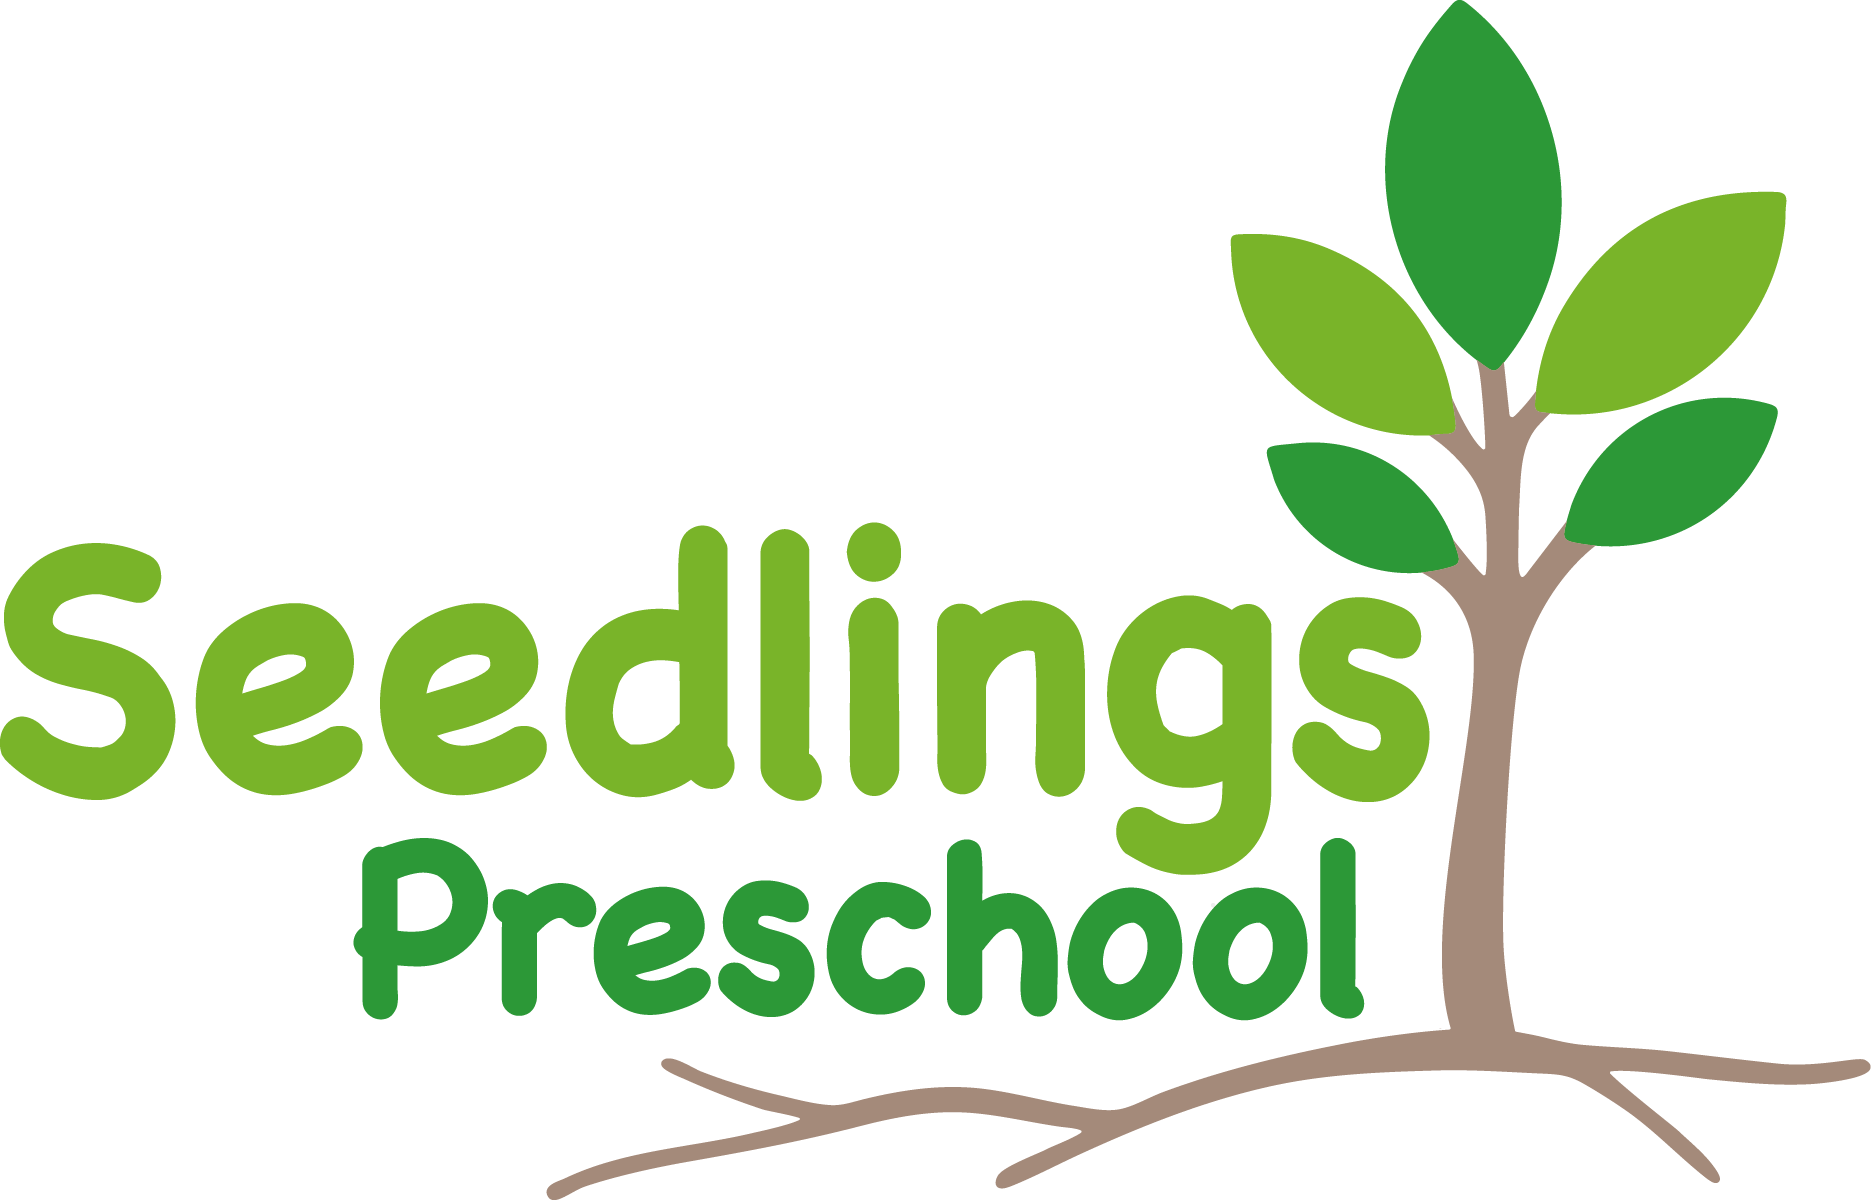 Seedlings Preschool